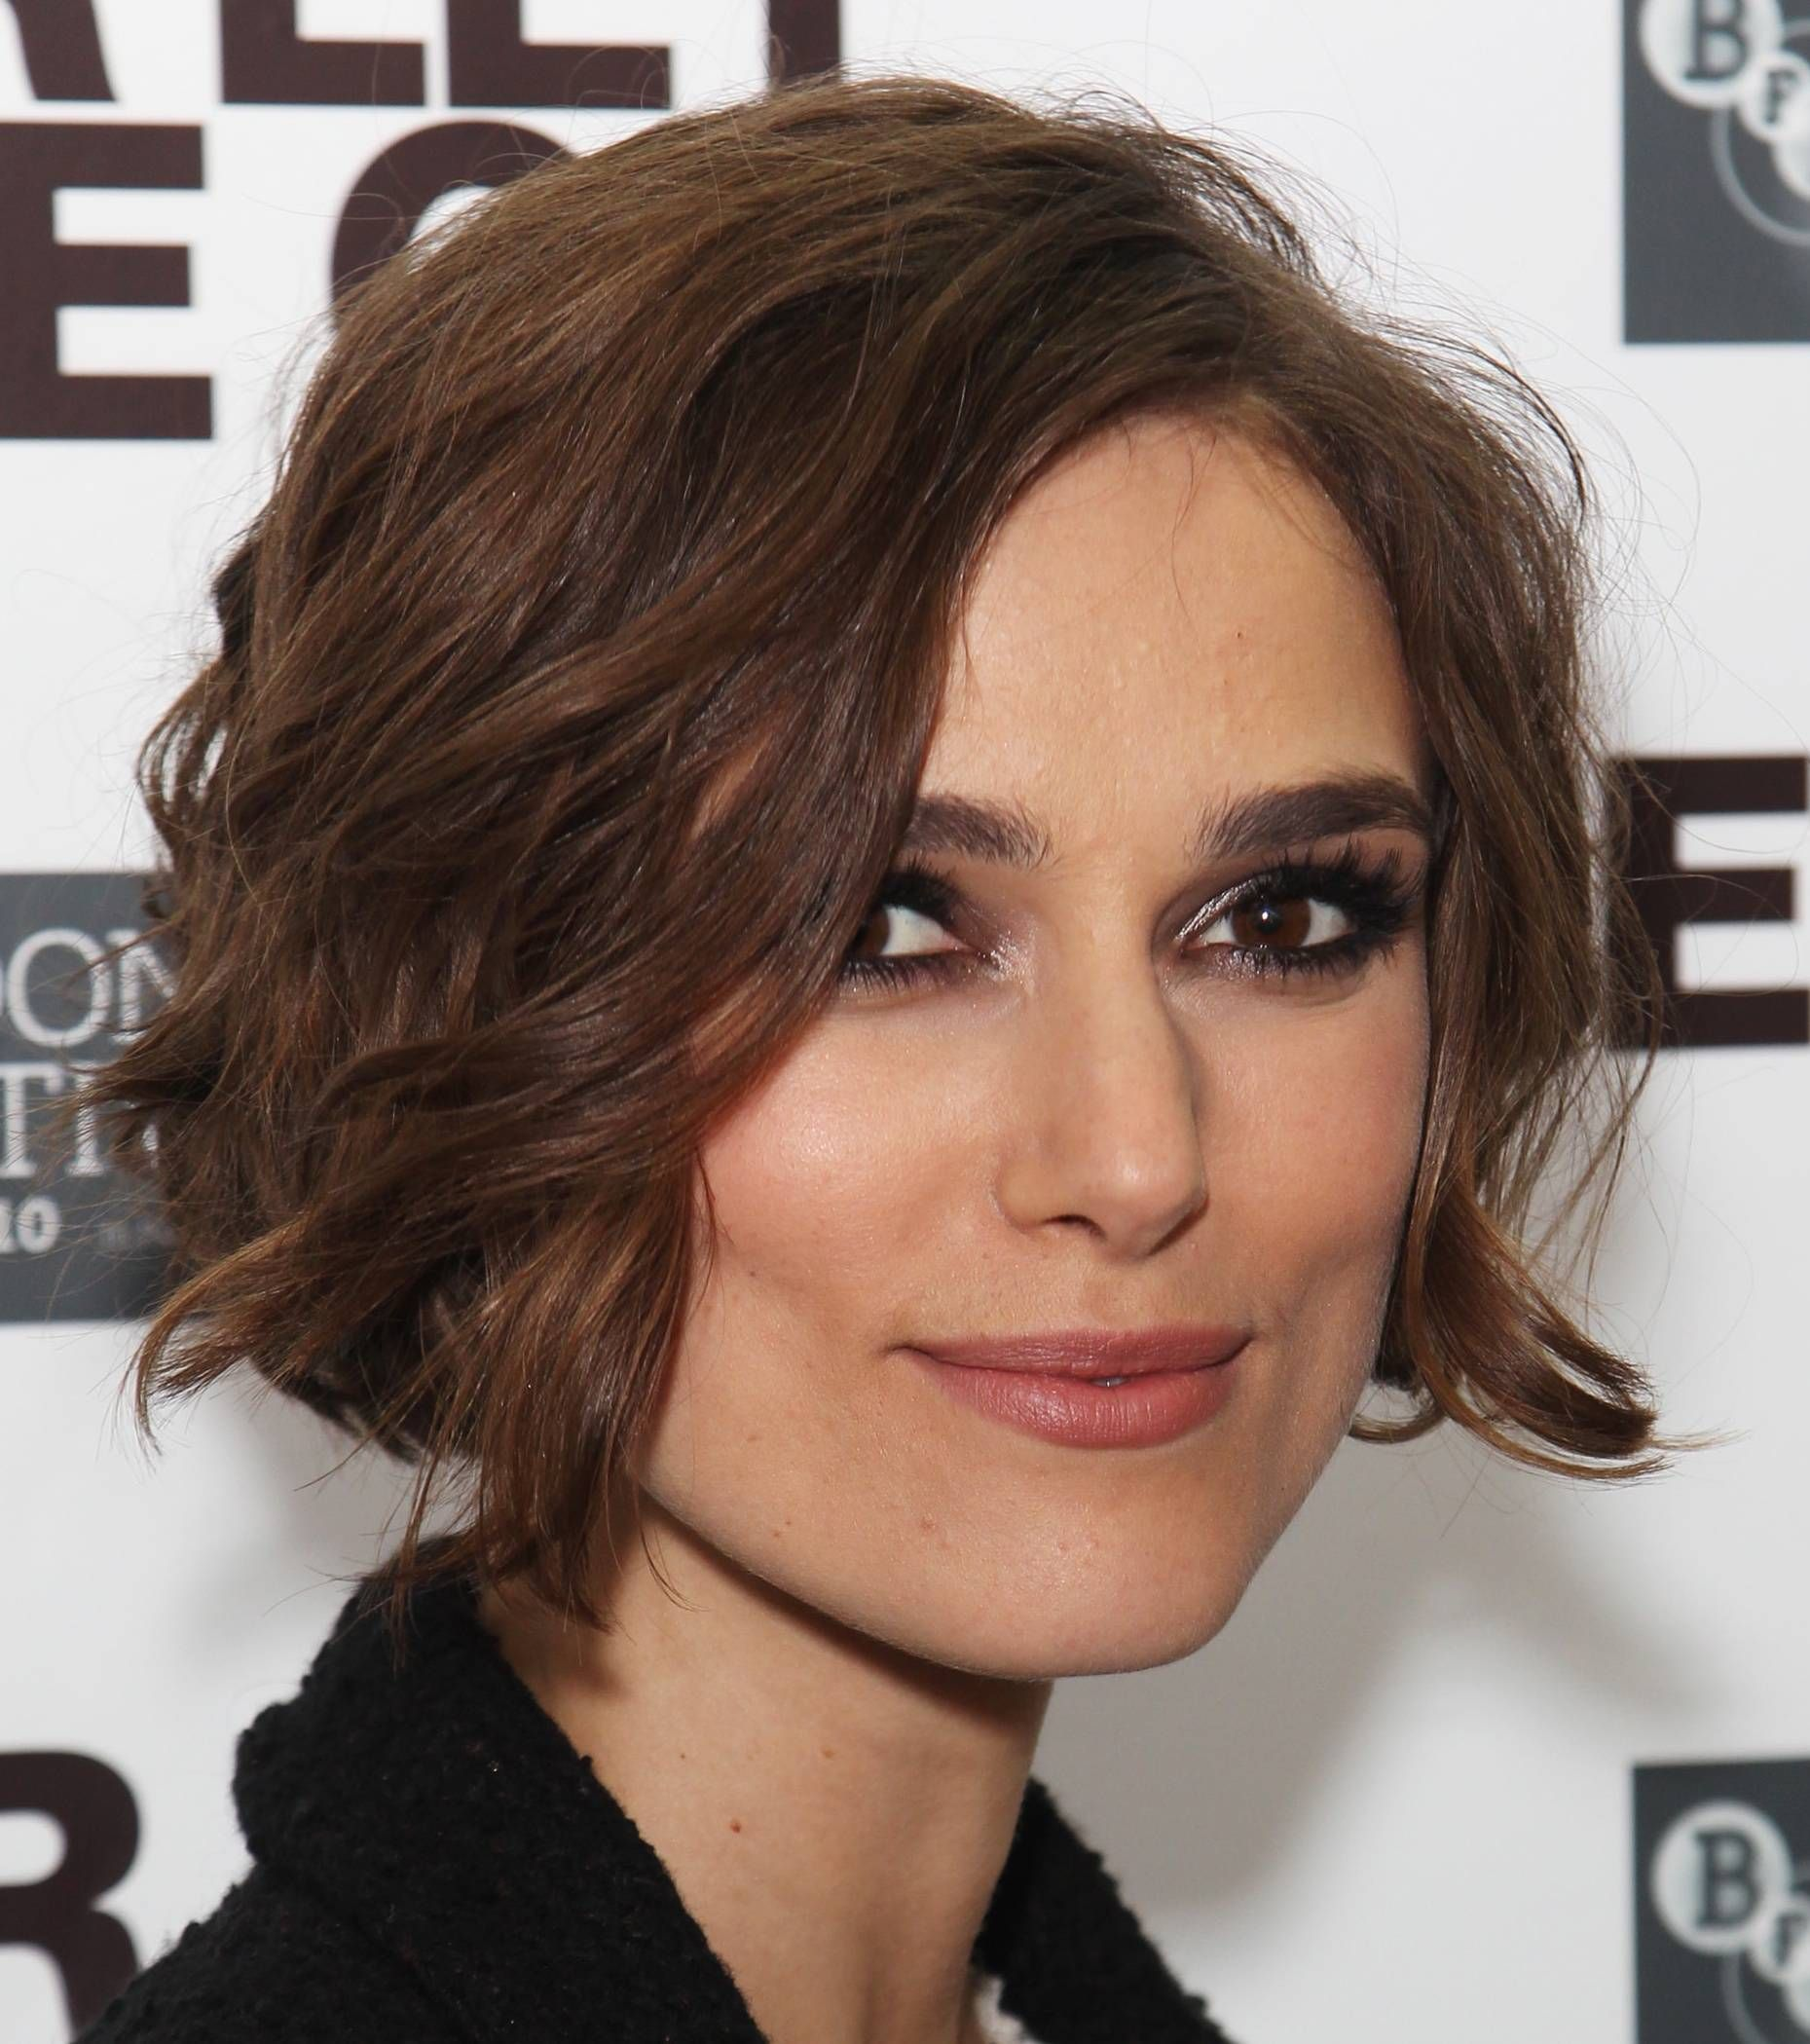 The Best Haircuts For Your Square Shaped Face Hair Beauty Make